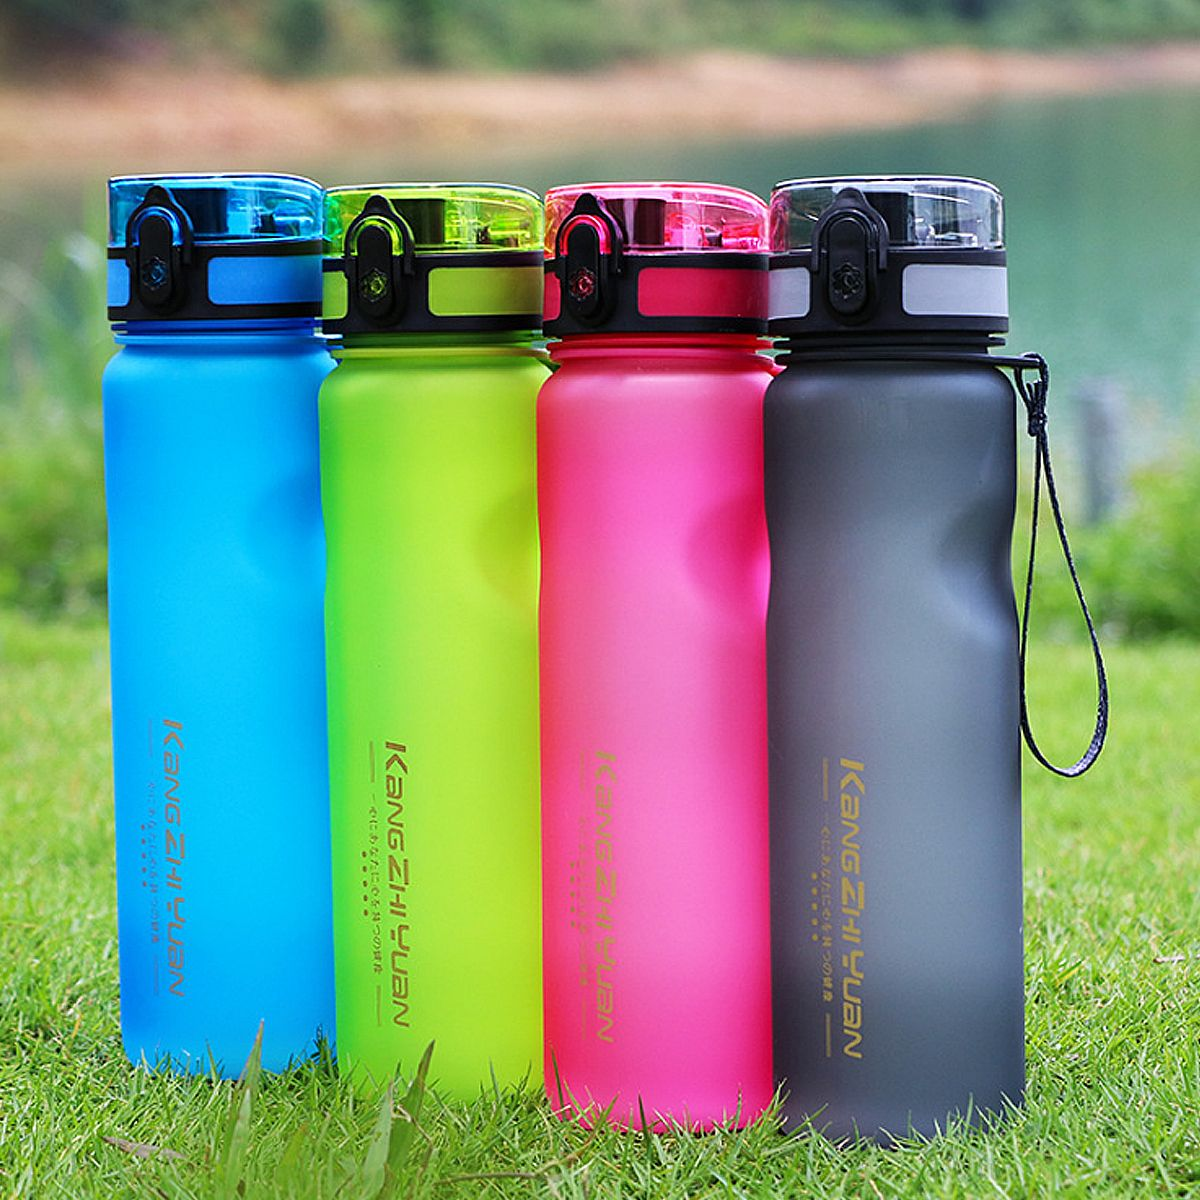 600ml Water Bottle Daily Pill Storage Organizer Box Outdoor Drinking Bottles Anti Leak Drinkware Water Bottle Bottle Daily Pill Storage